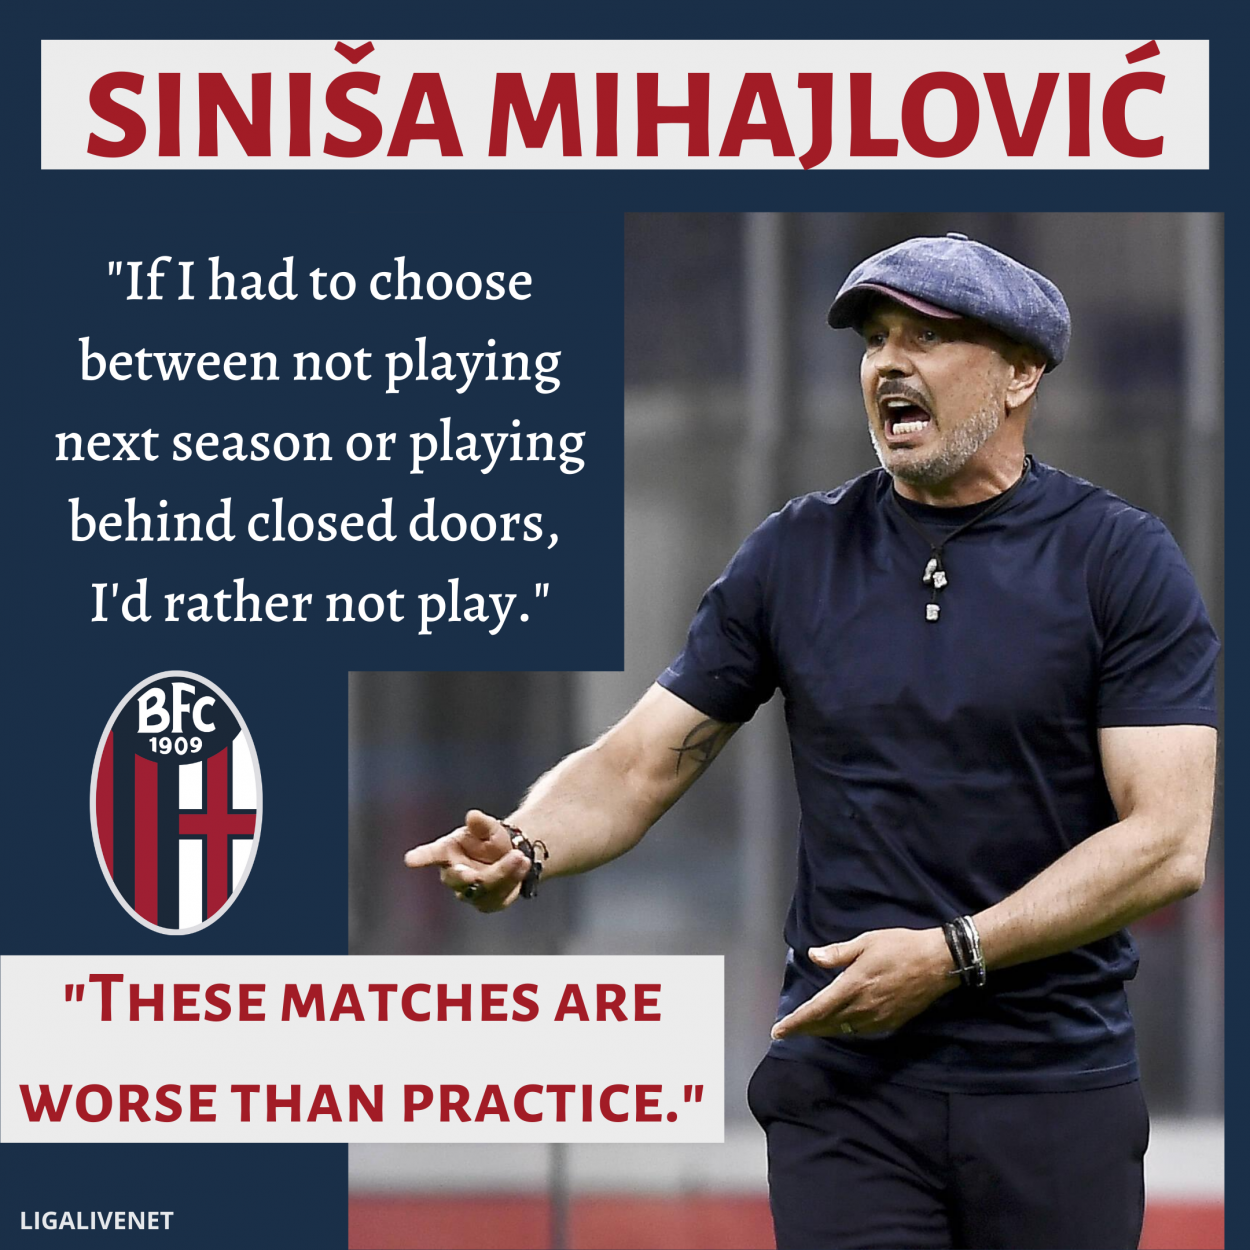 Sinisa Mihajlovic would rather not play without fans